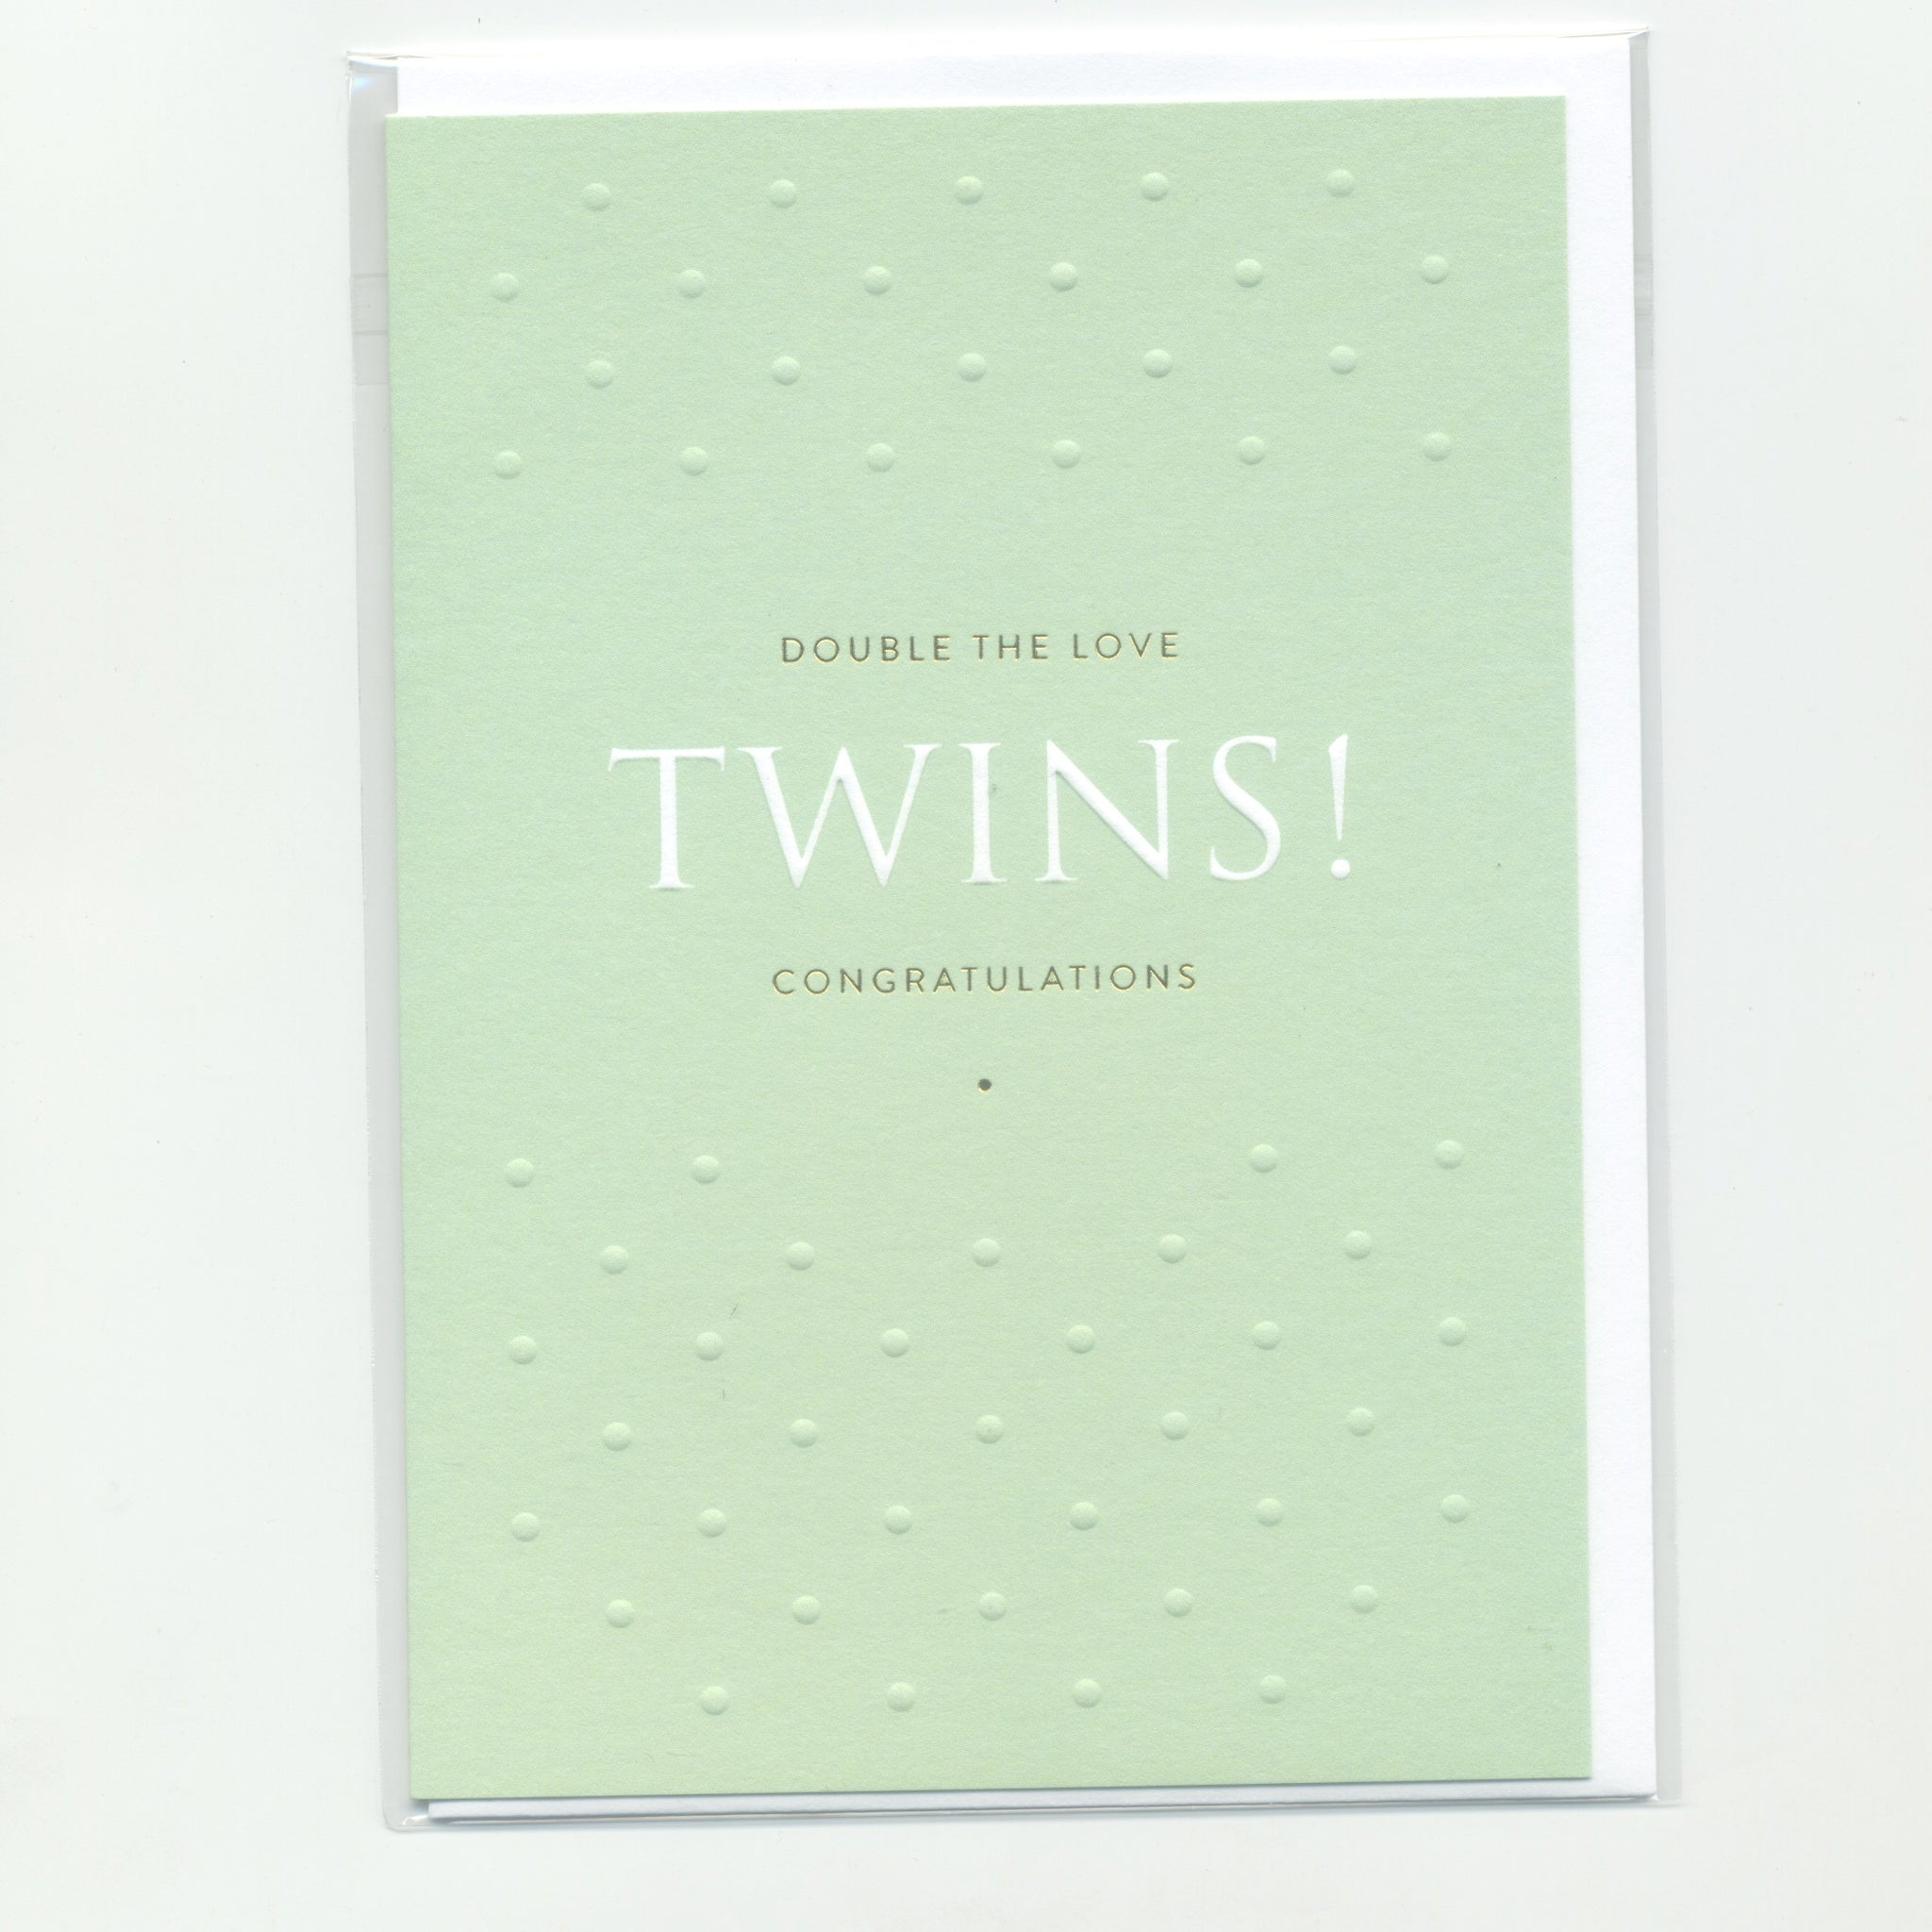 Double the Love Twins! Congratulations - Card